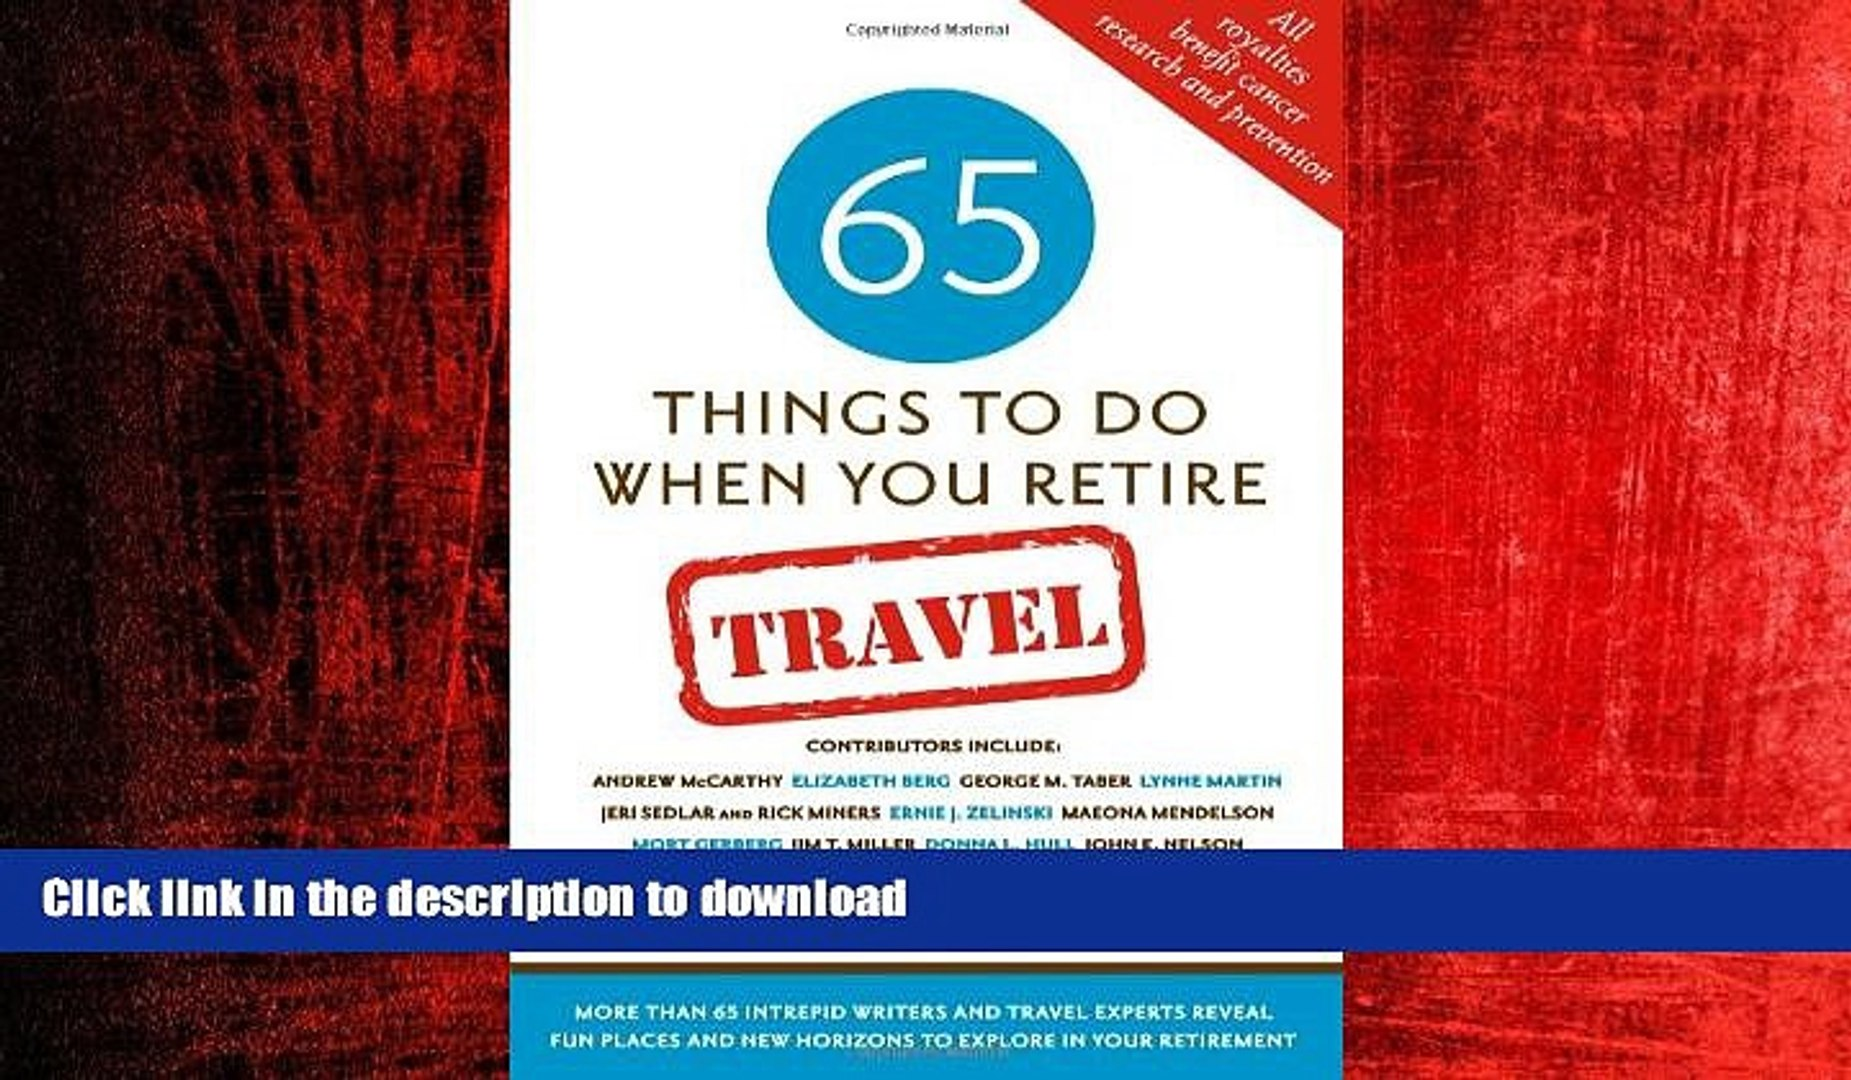 FAVORIT BOOK 20 Things To Do When You Retire Travel   20 Intrepid Travel  Writers and Experts